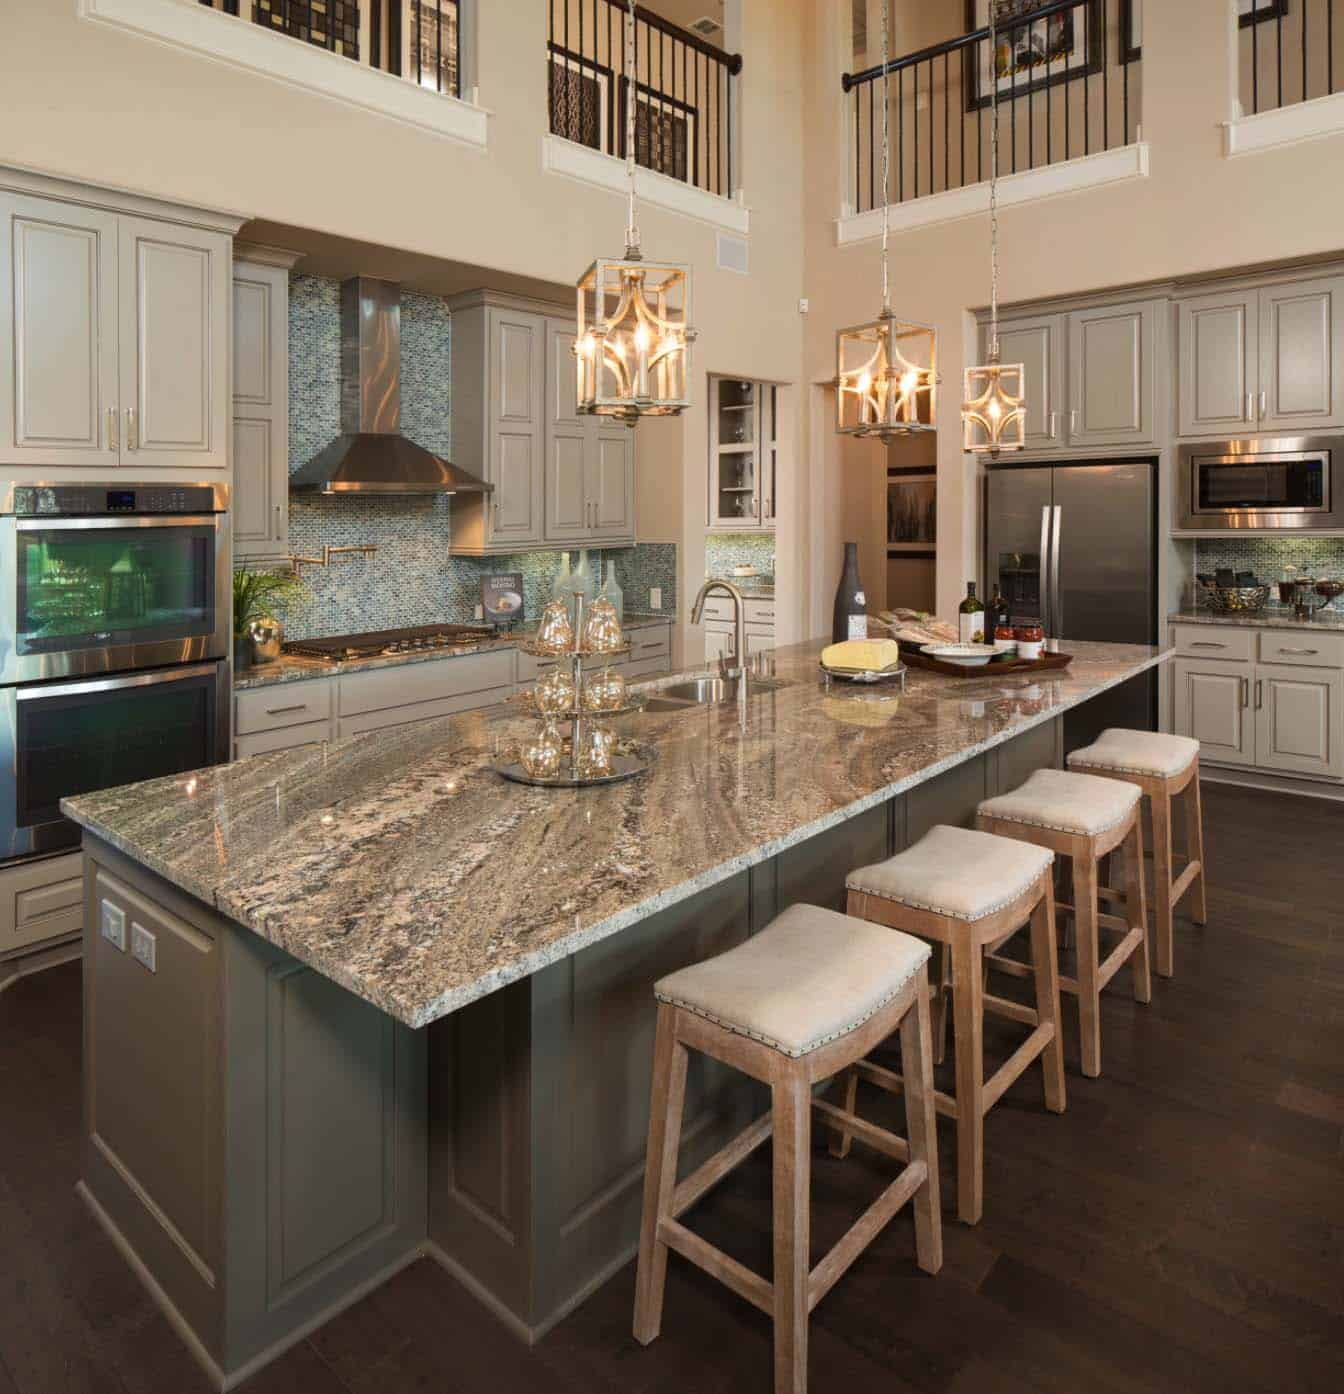 Kitchen Island Design Ideas ~ Brilliant kitchen island ideas that make a statement